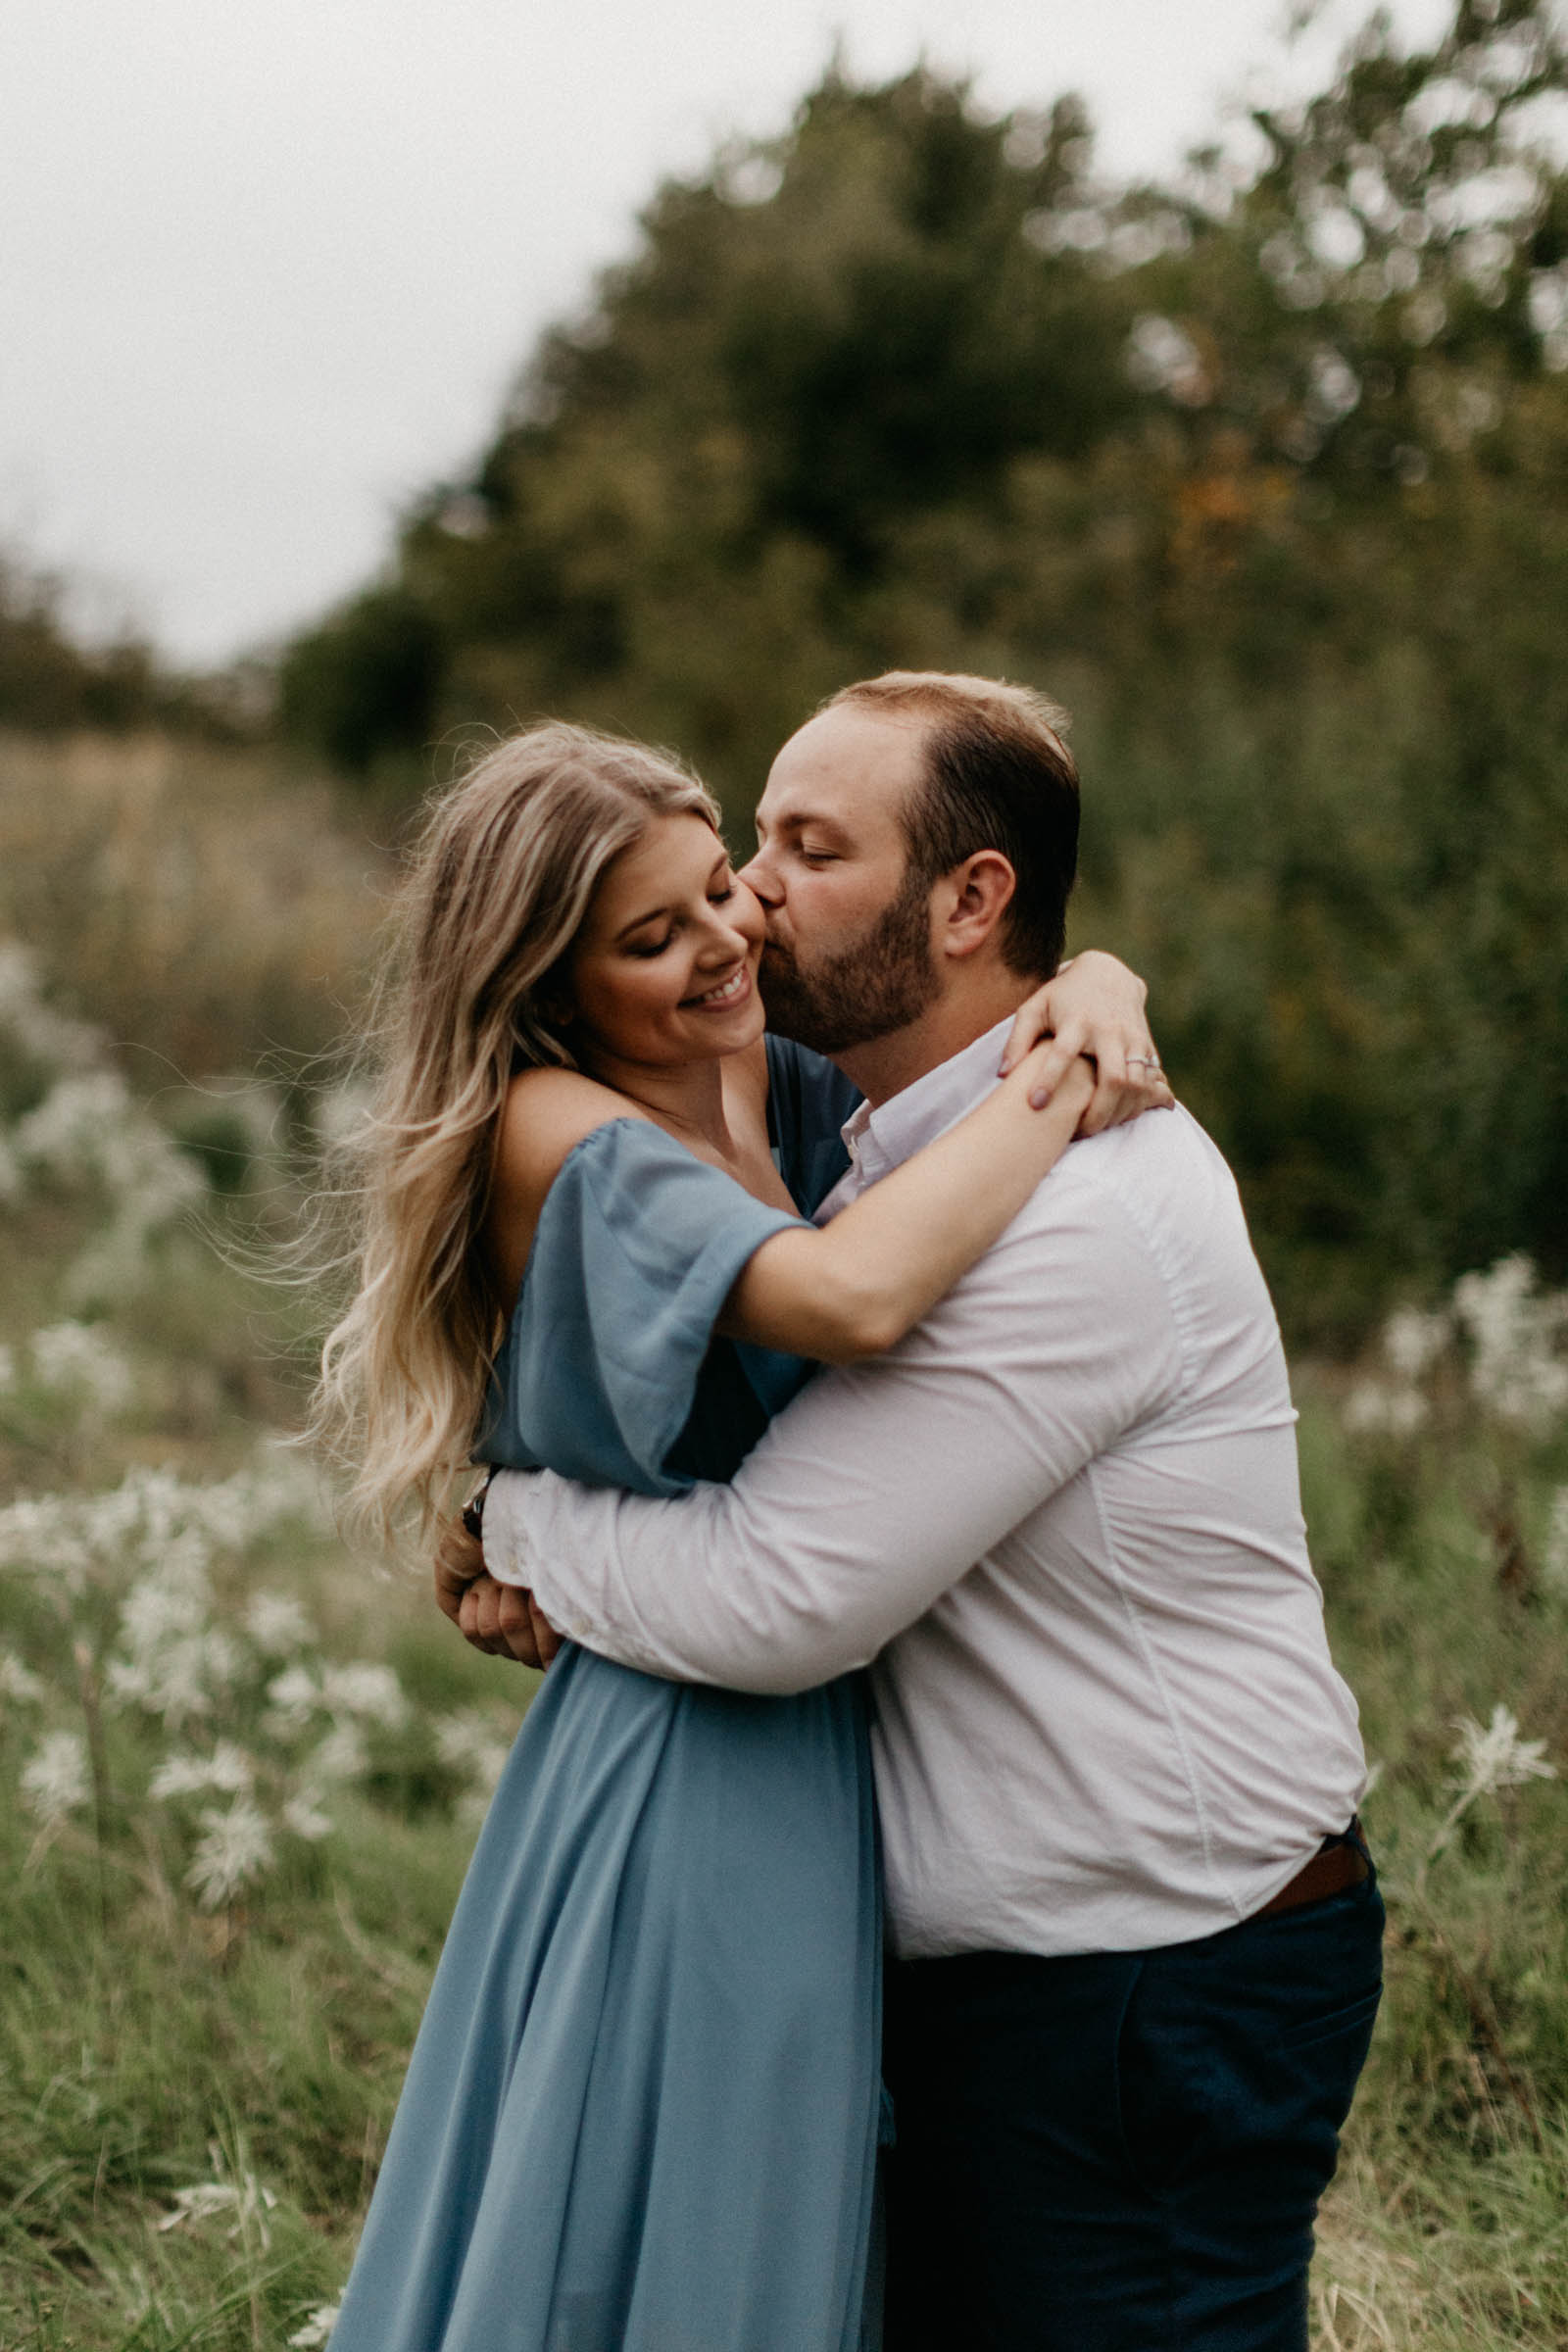 Boy kissing girl on the cheek during fall engagement session in fort worth | Couple wearing formal clothes for photography shoot